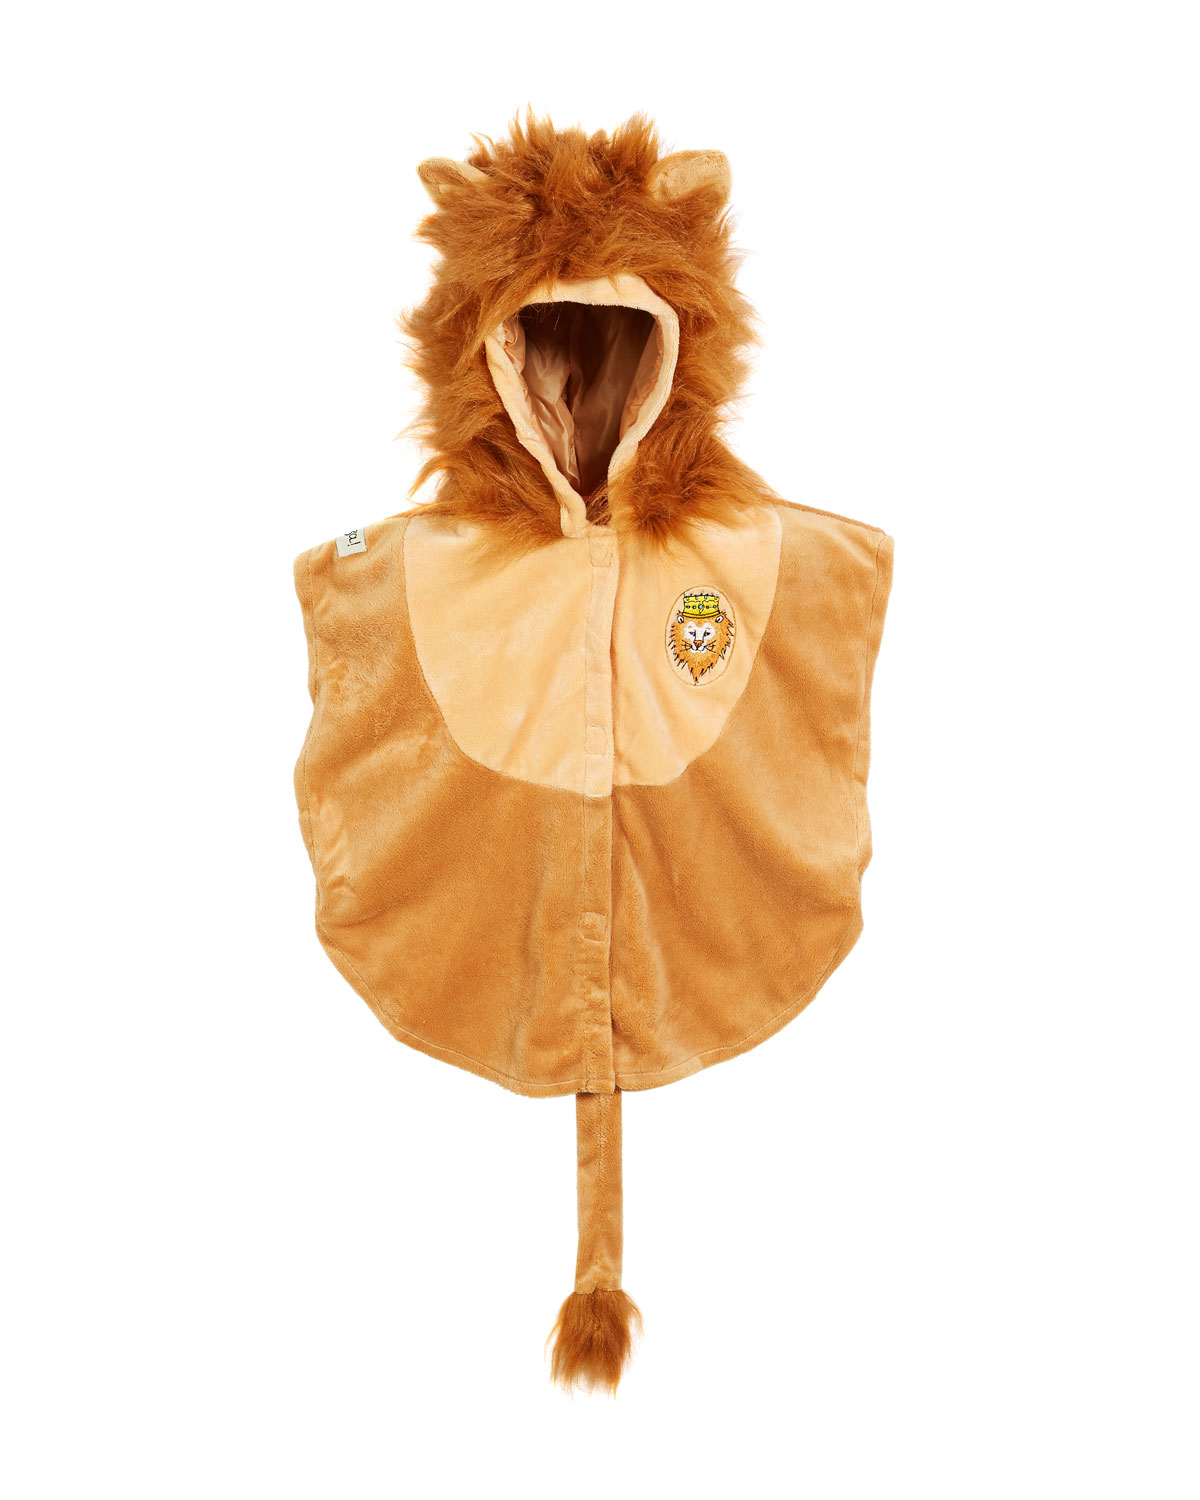 Baby Lion Peke Cape Costume 2Y